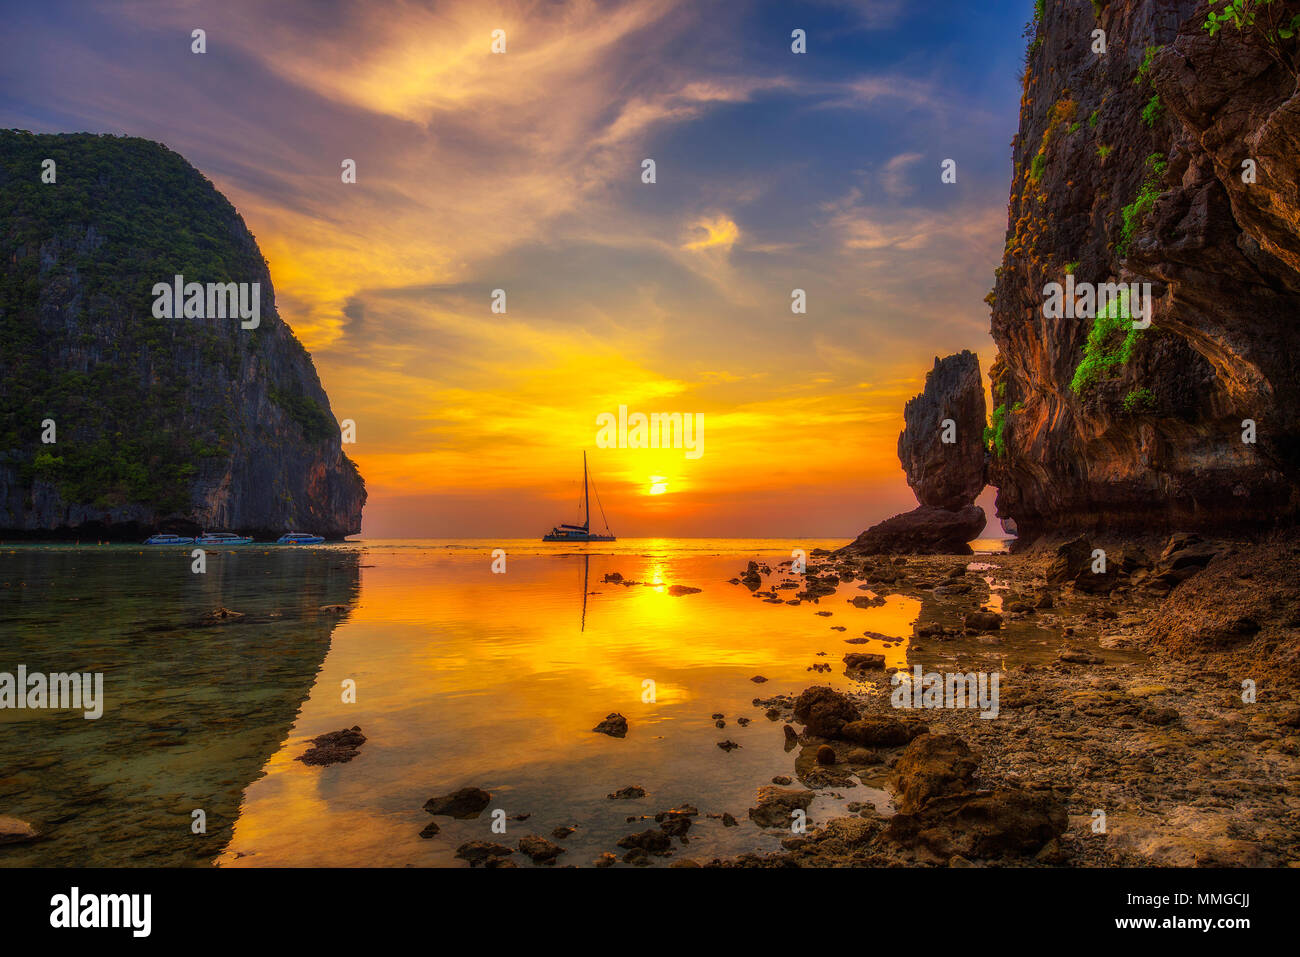 Sunset at the Maya beach on Koh Phi Phi island in Thailand - Stock Image